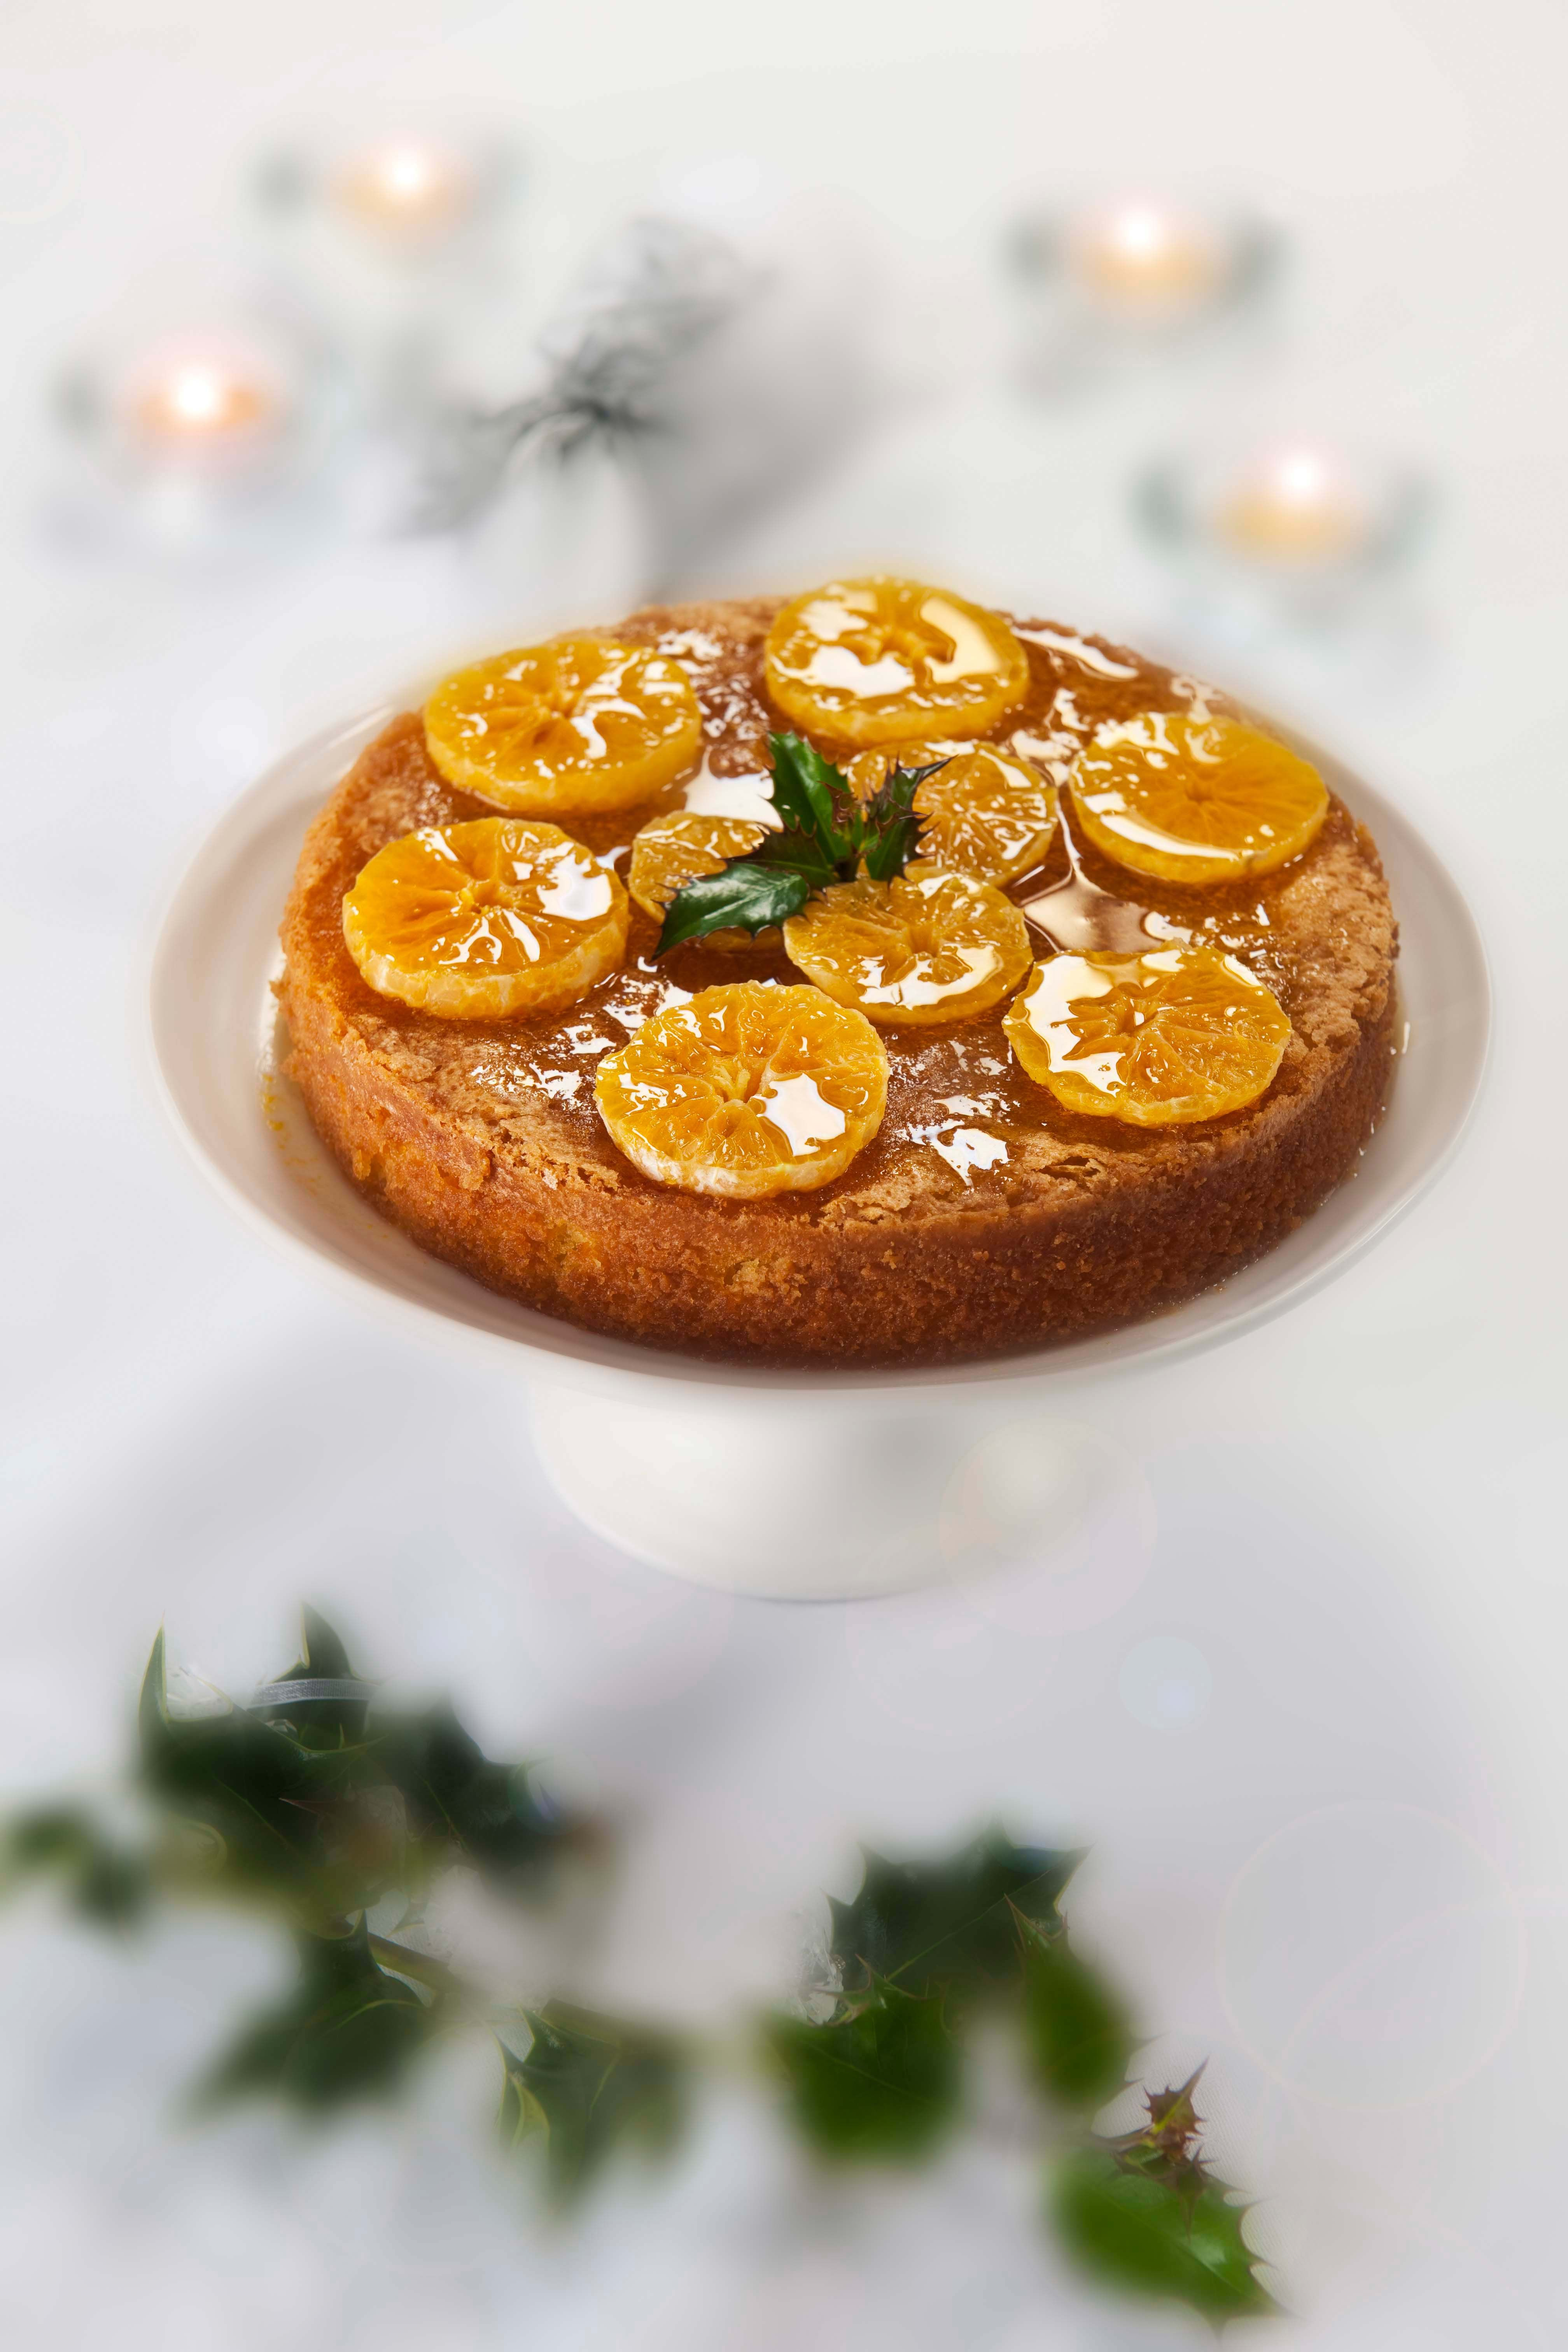 Gusto recipes cooking ideas from canadas food lifestyle canadas food lifestyle channel clementine cake via rachel allen httpgustotvrecipesdessertclementine cake forumfinder Image collections